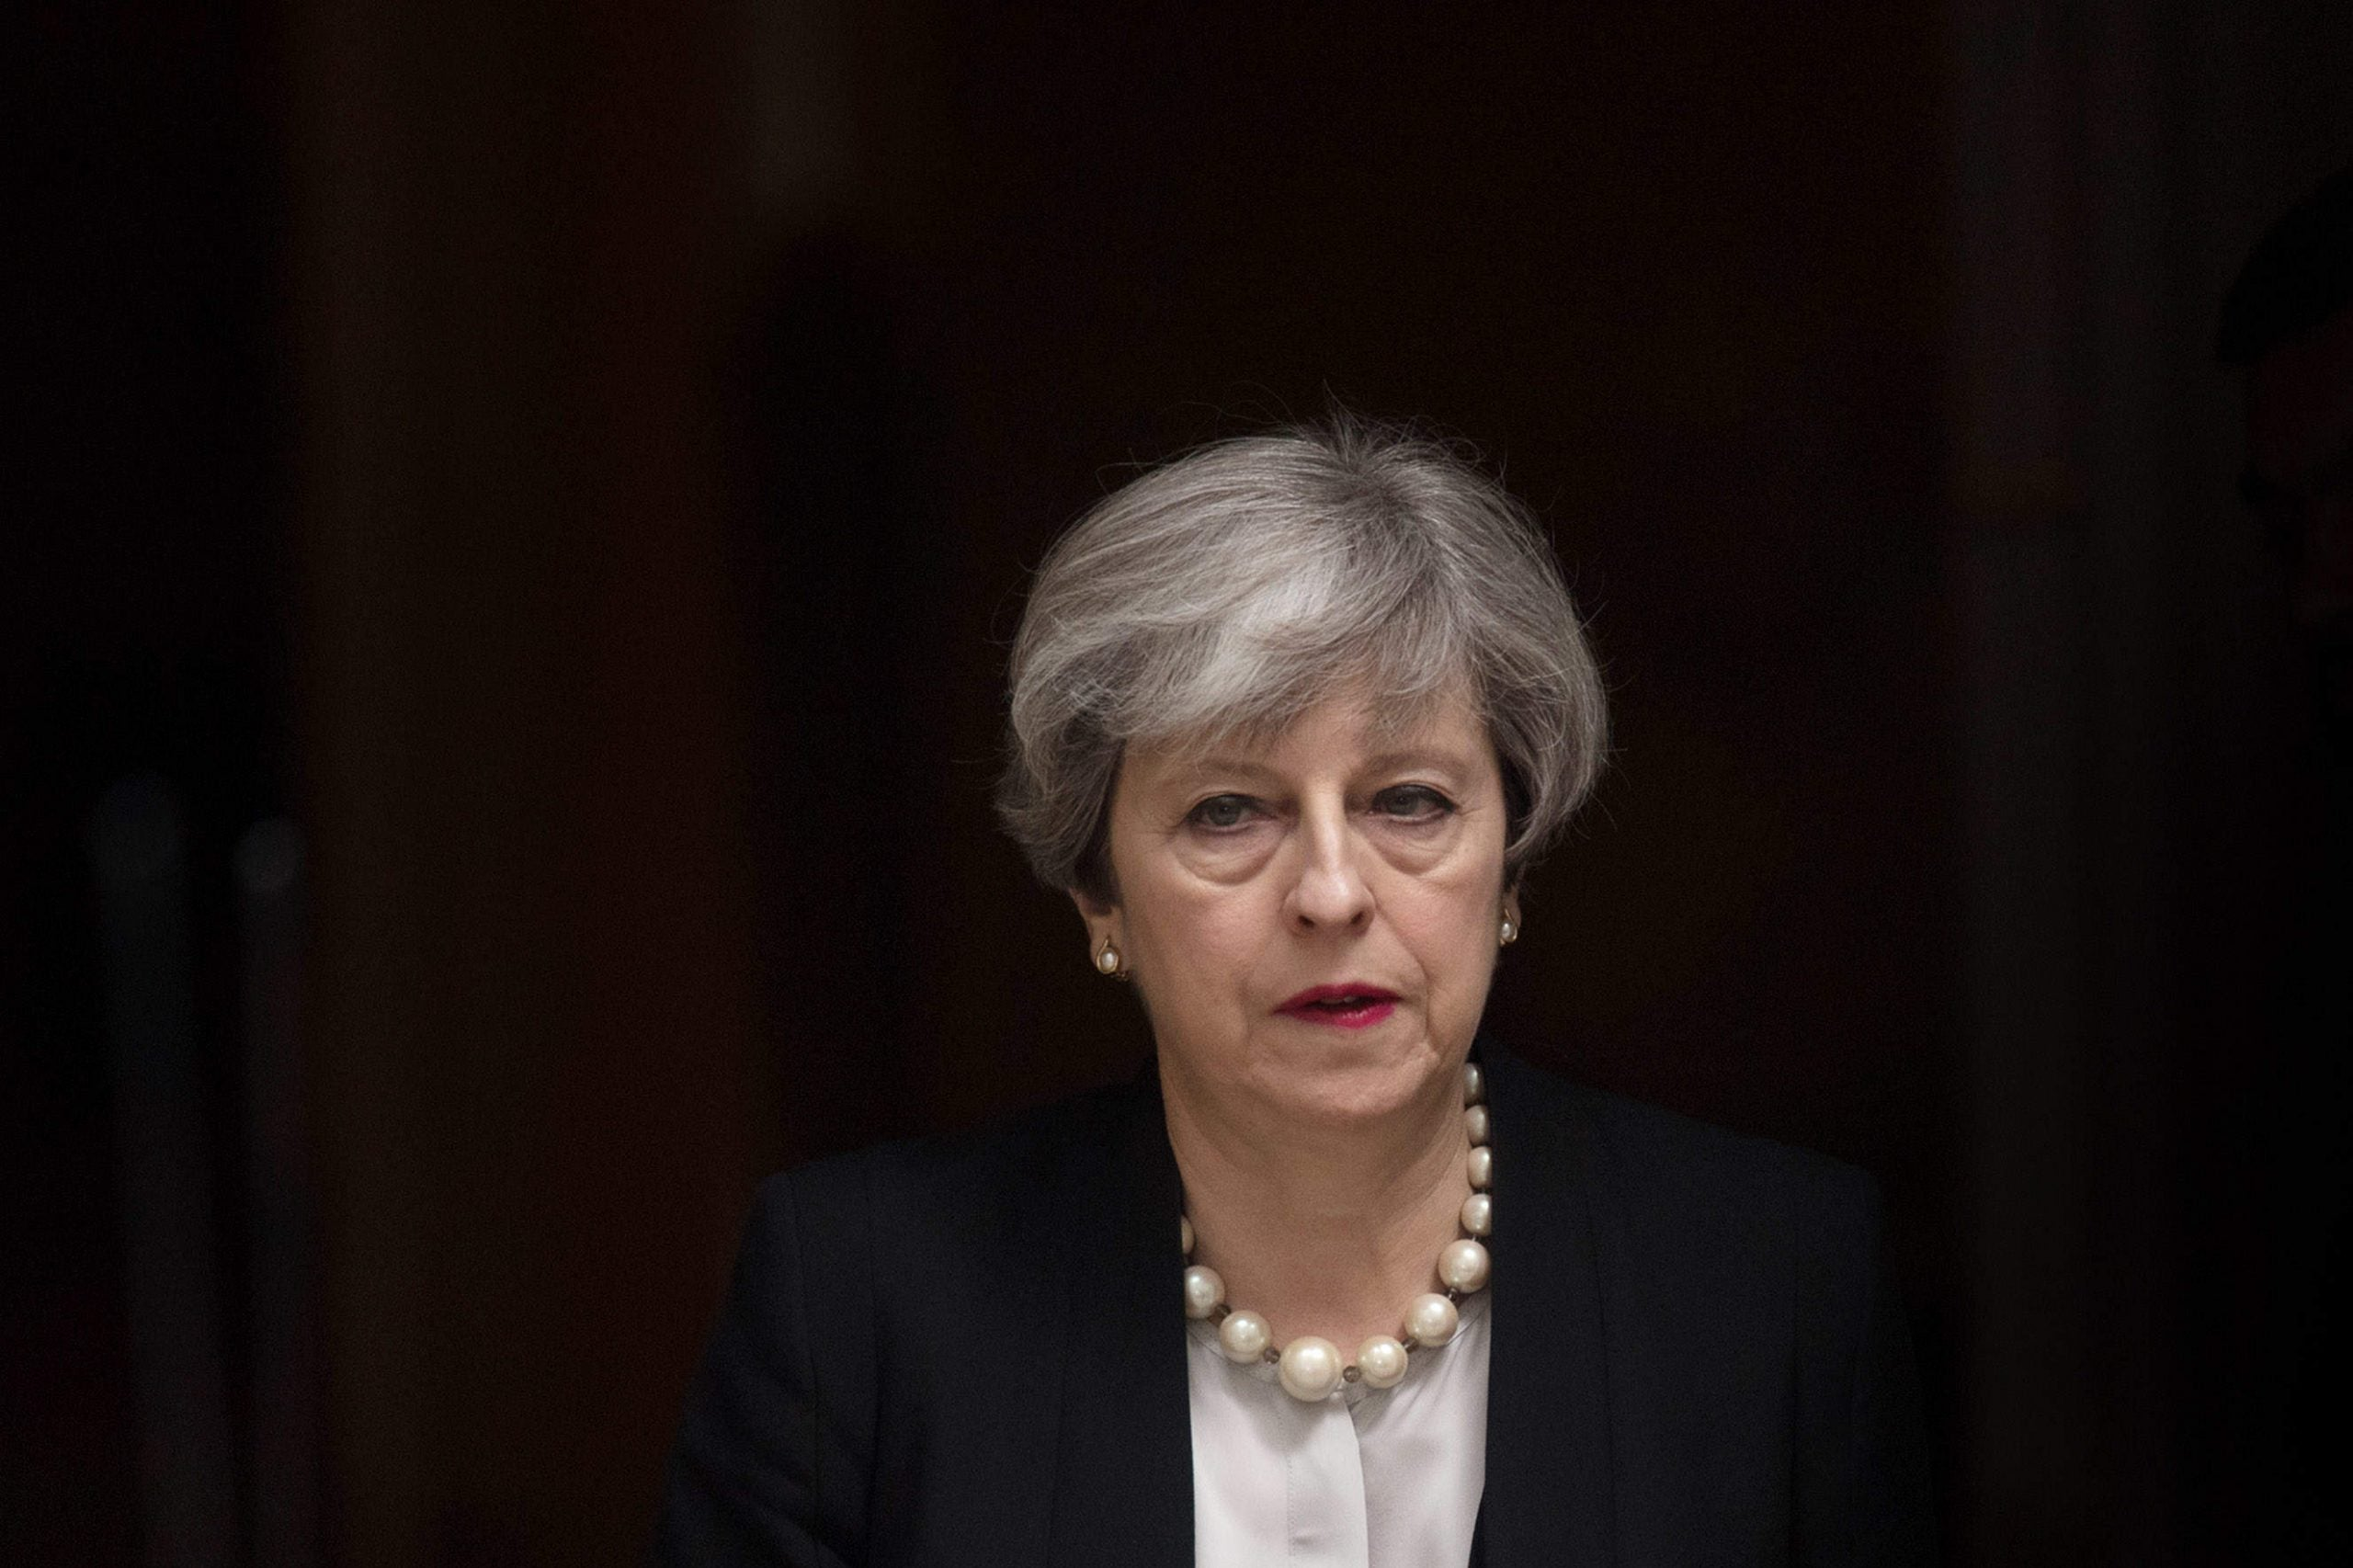 An epic tale of hubris and humiliation: Theresa May's masochism premiership